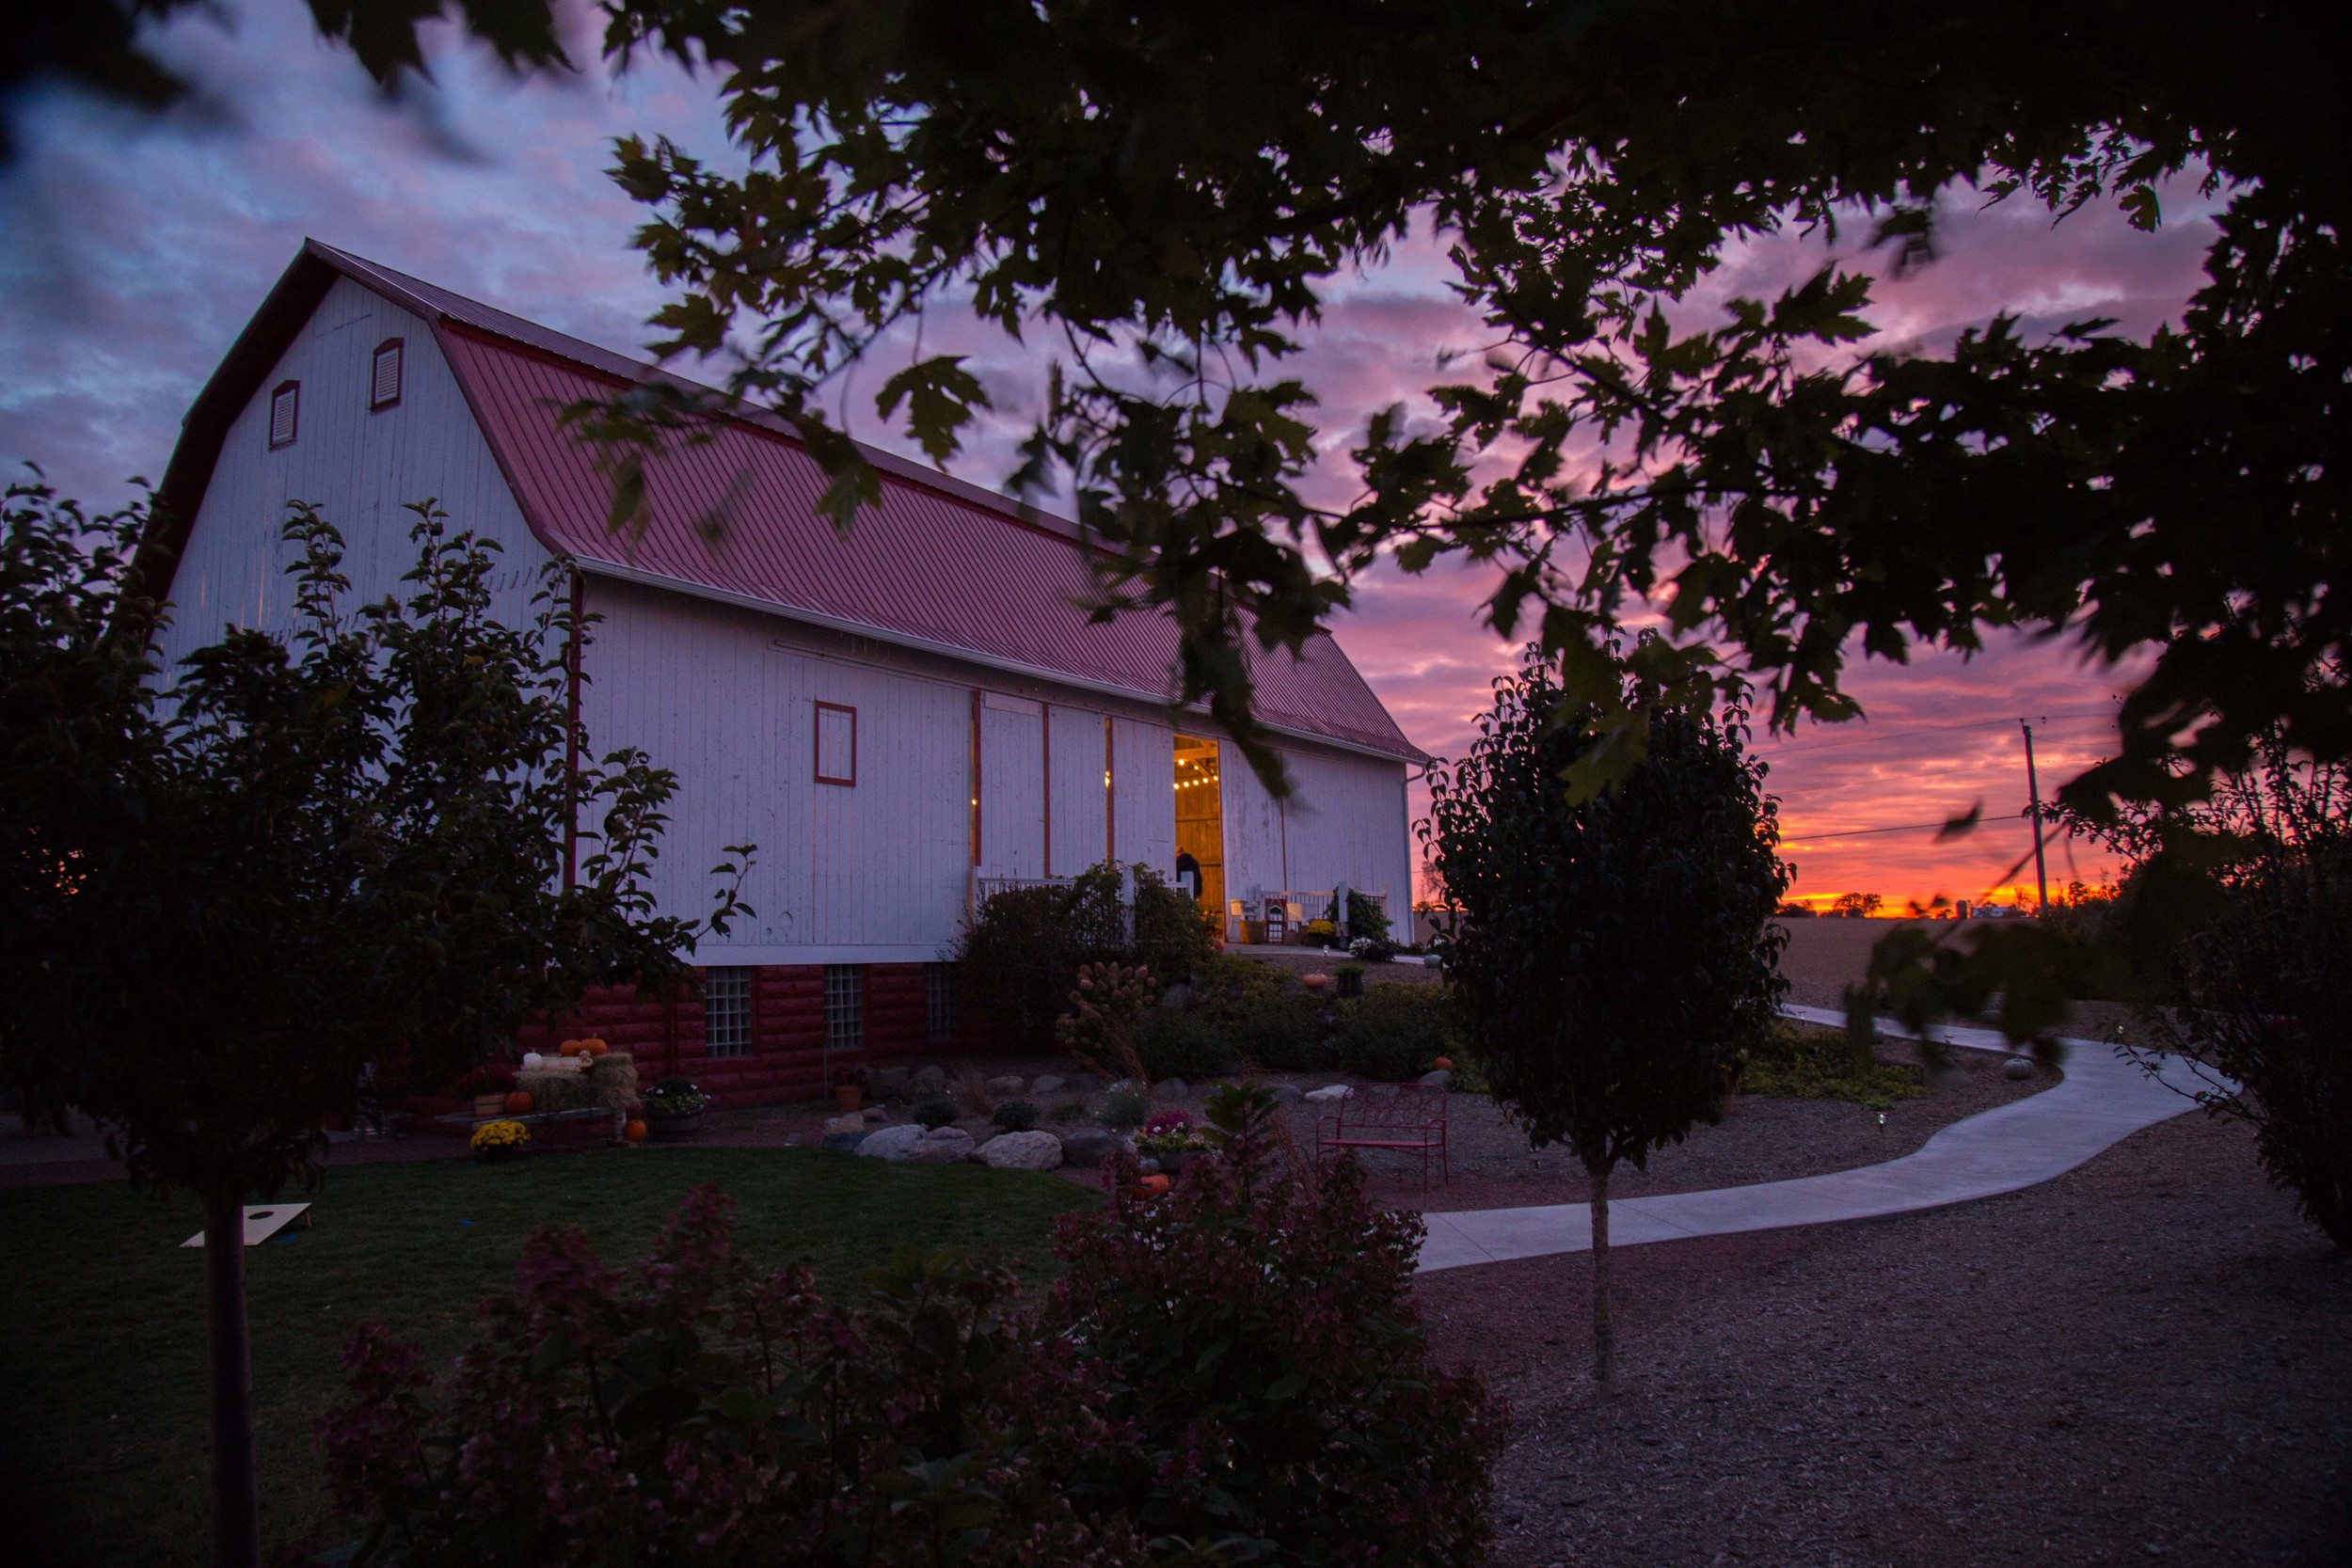 10_10-Barn_Berm_sunset_9742.jpg